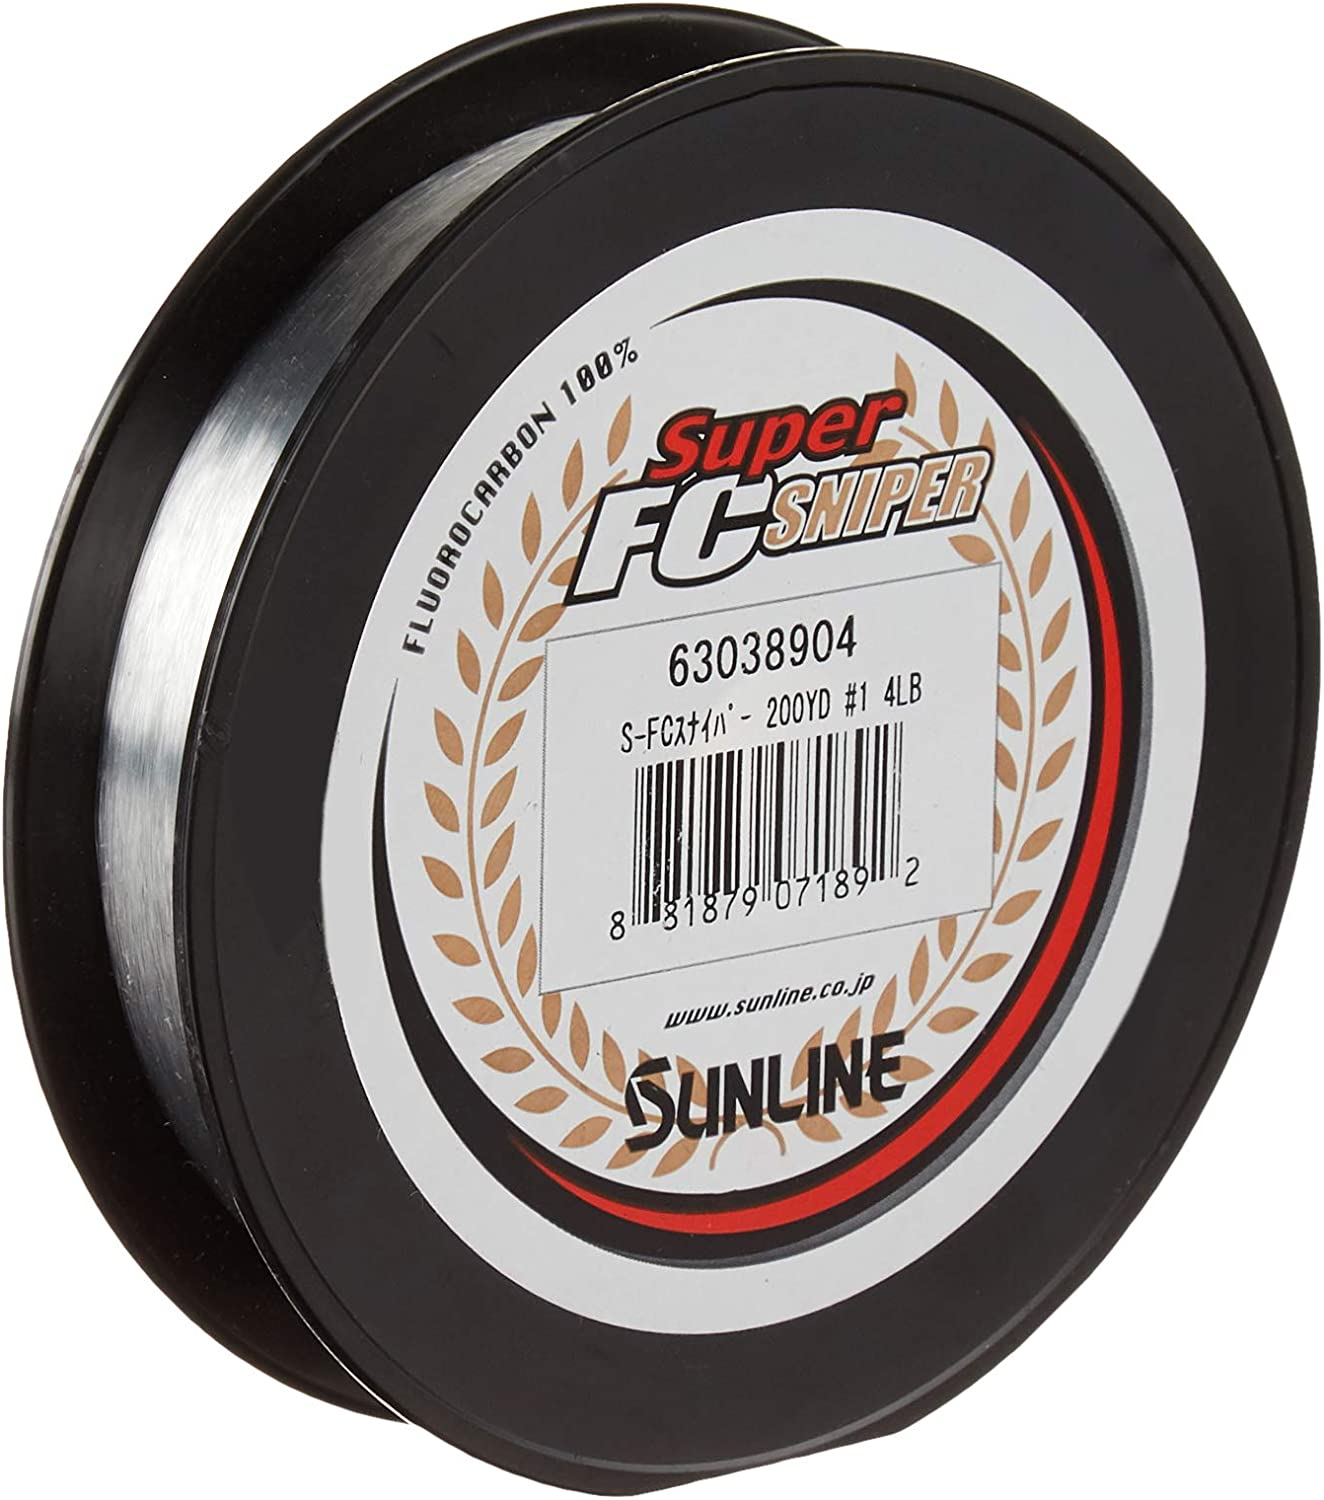 SUNLINE fluorocarbon line shooter sniper 100m 18lb Natural Fishing Line Clear